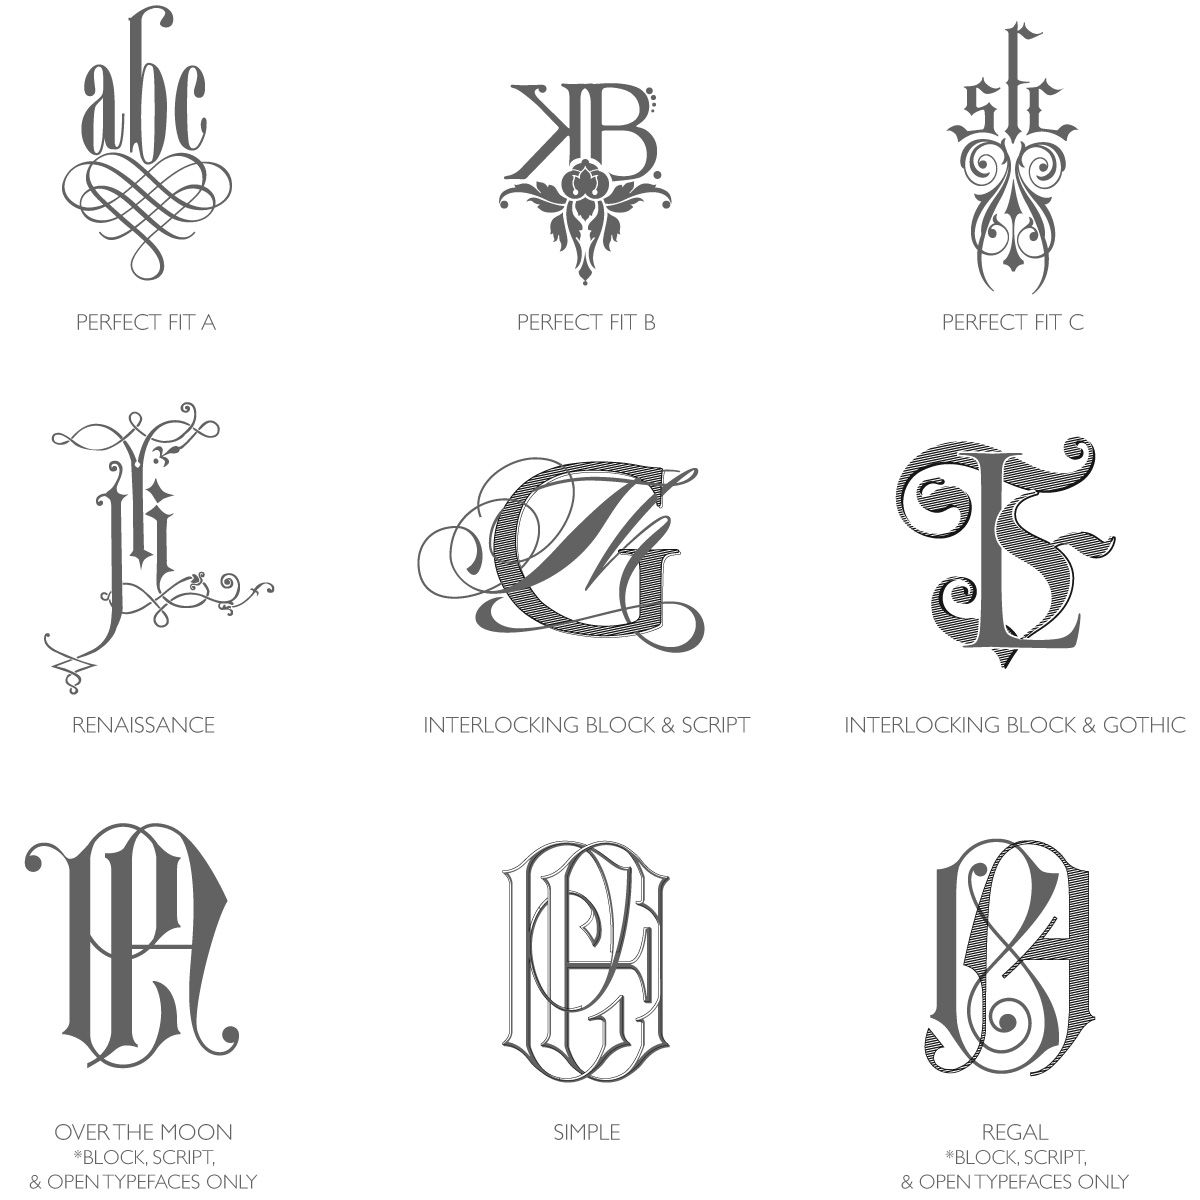 Bell Invito Category C Monograms Are Intricately